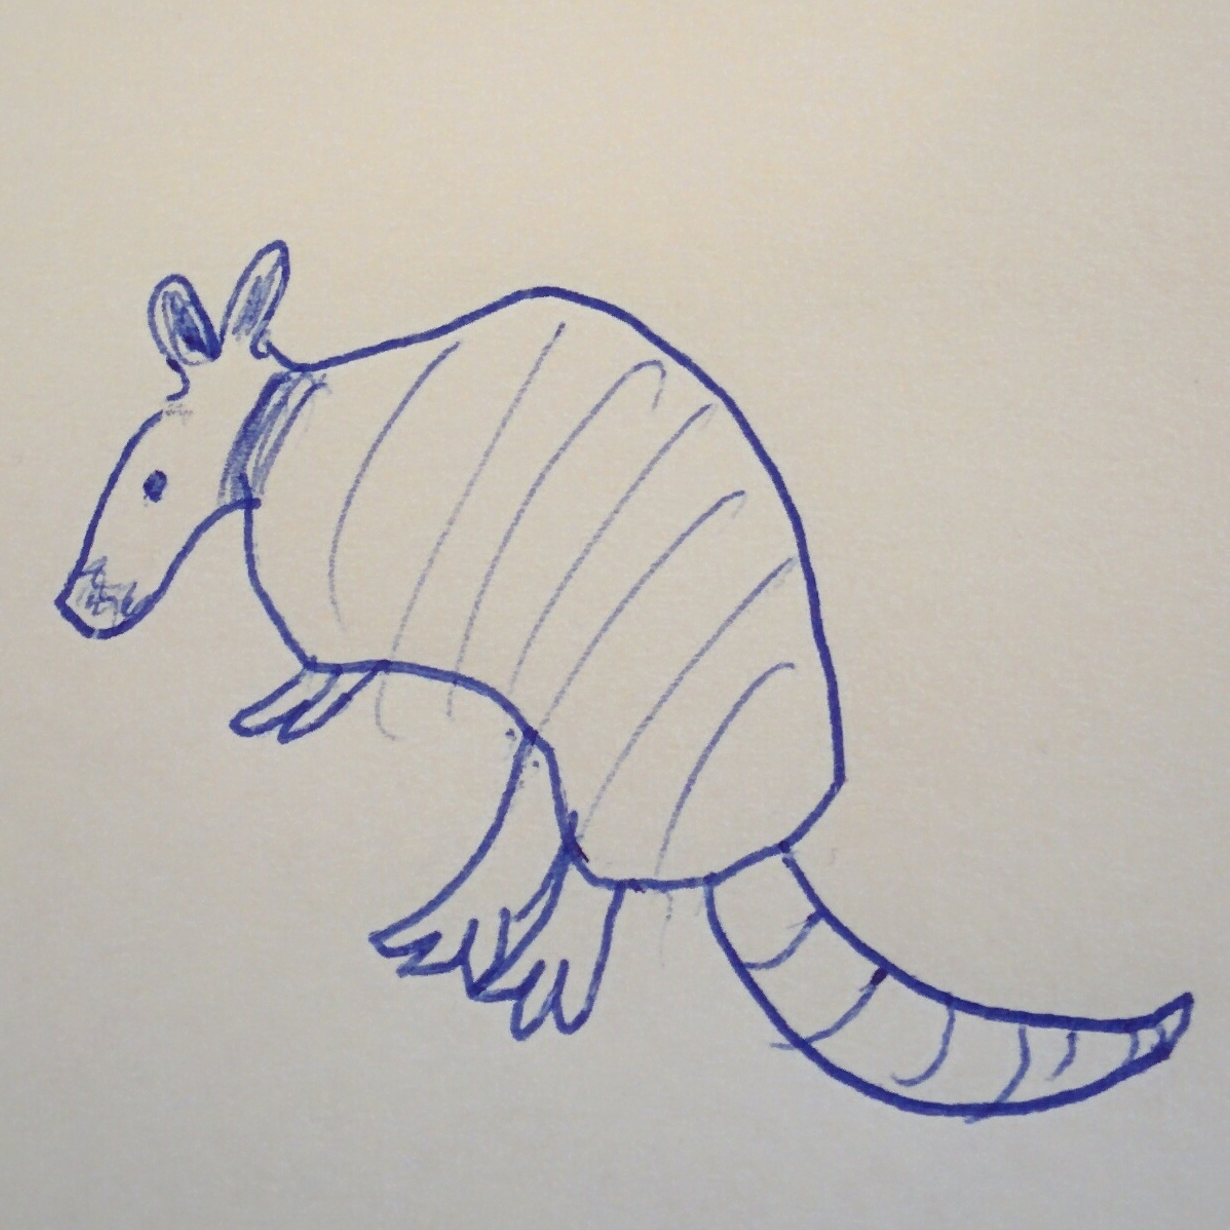 The official Armadillo logo, clearly done by one of Google's top artists.